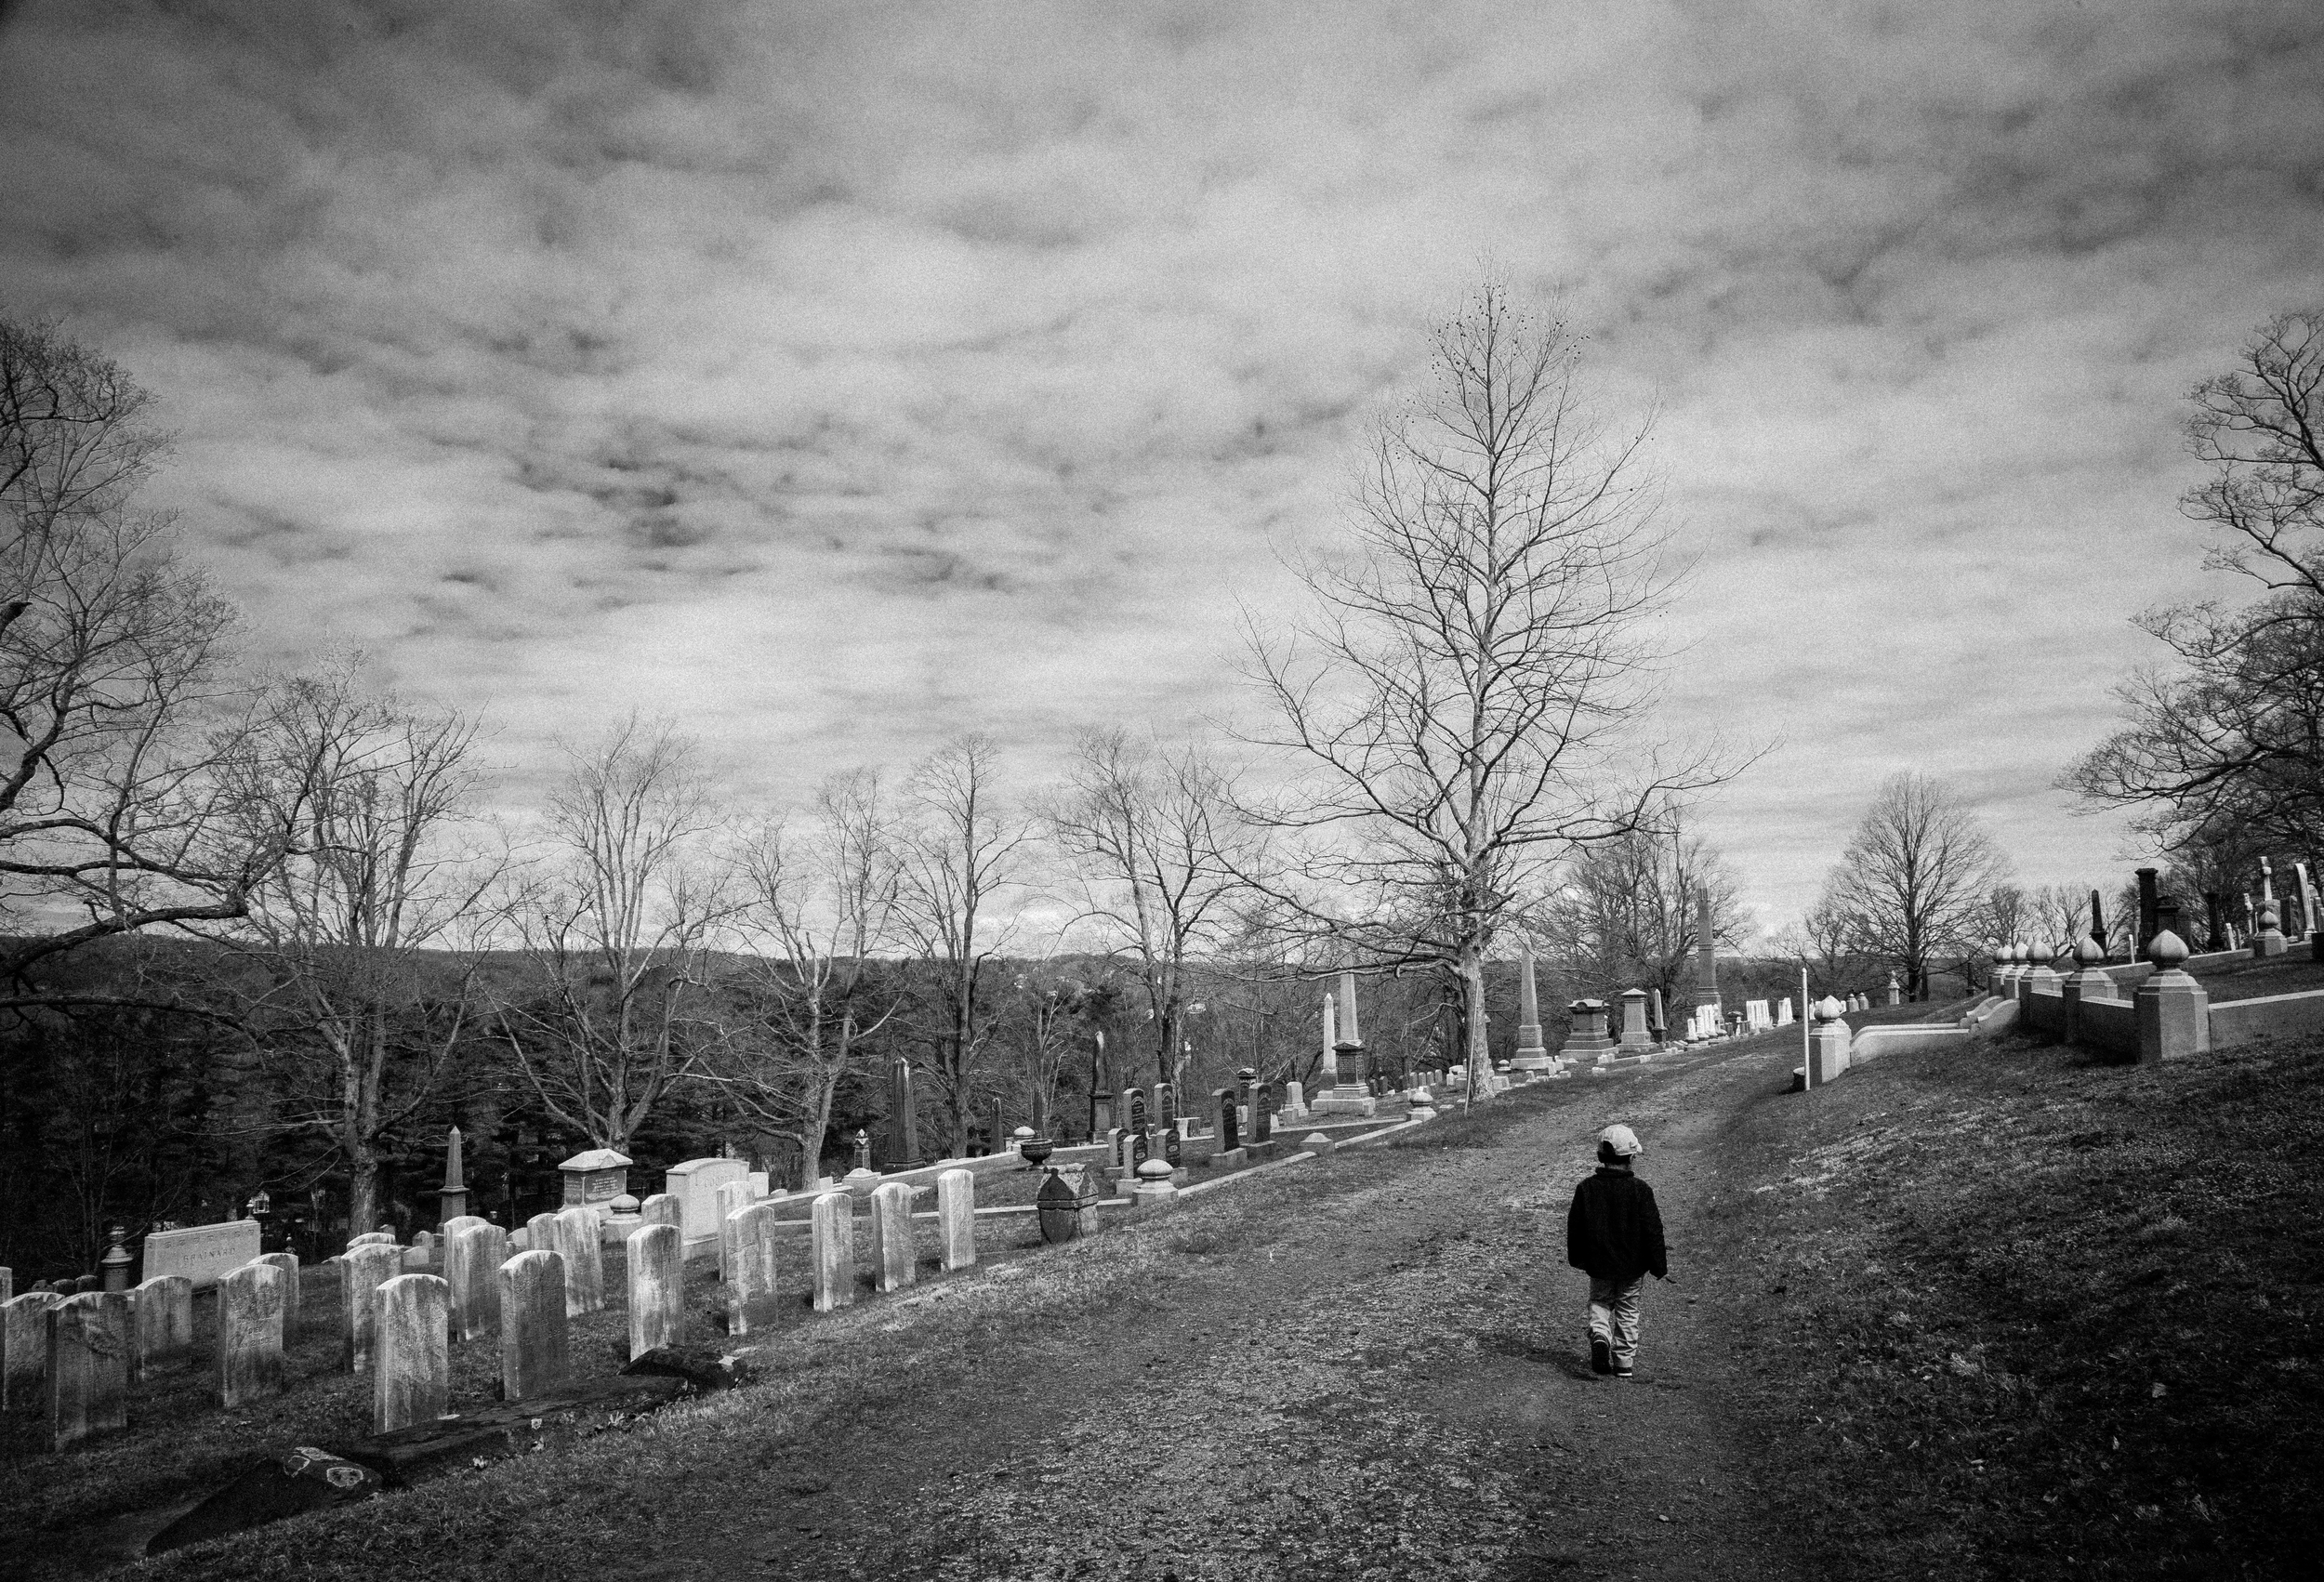 "Indian Hill Cemetery, 2015  This shot reminds me of Neil Gaiman's, ""The Graveyard Book.""  Gaiman is one of my favorite authors and I often thought of that book when I took walks through this cemetery.  When my son, Cormac, walked ahead of me on the path scenes from that book immediately came to mind."